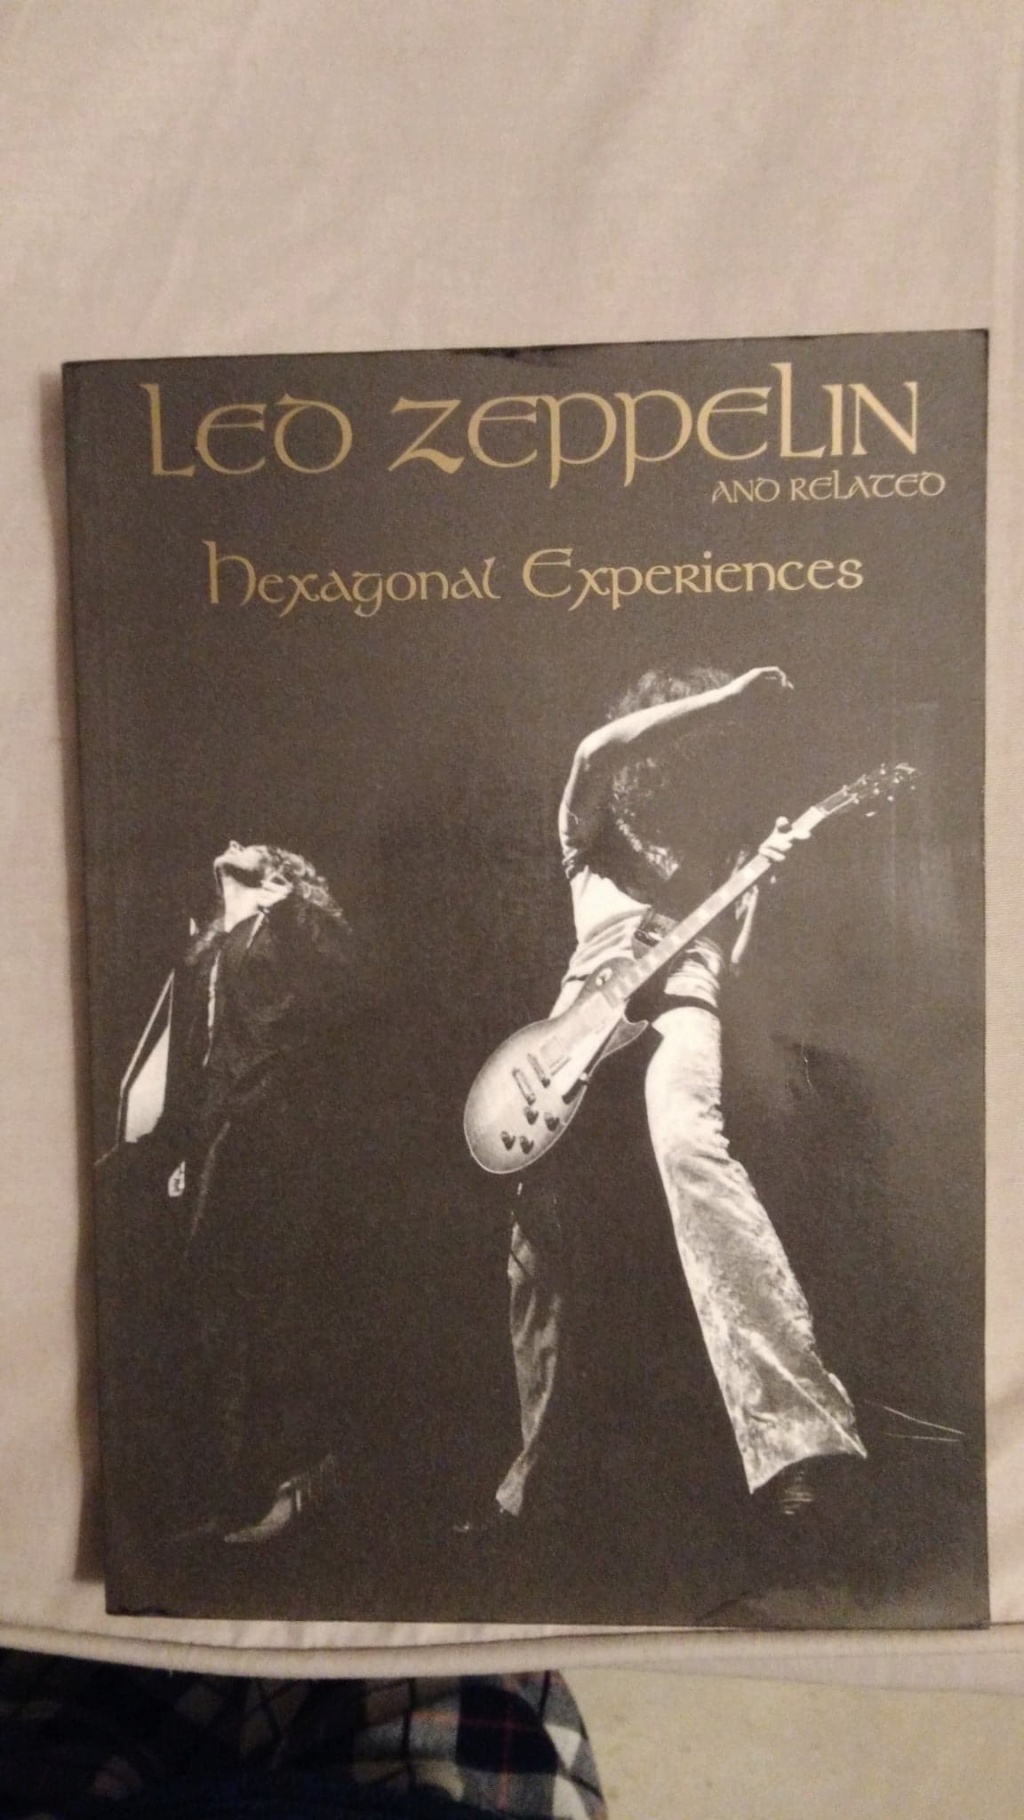 JIMMY PAGE - Page 19 13607110